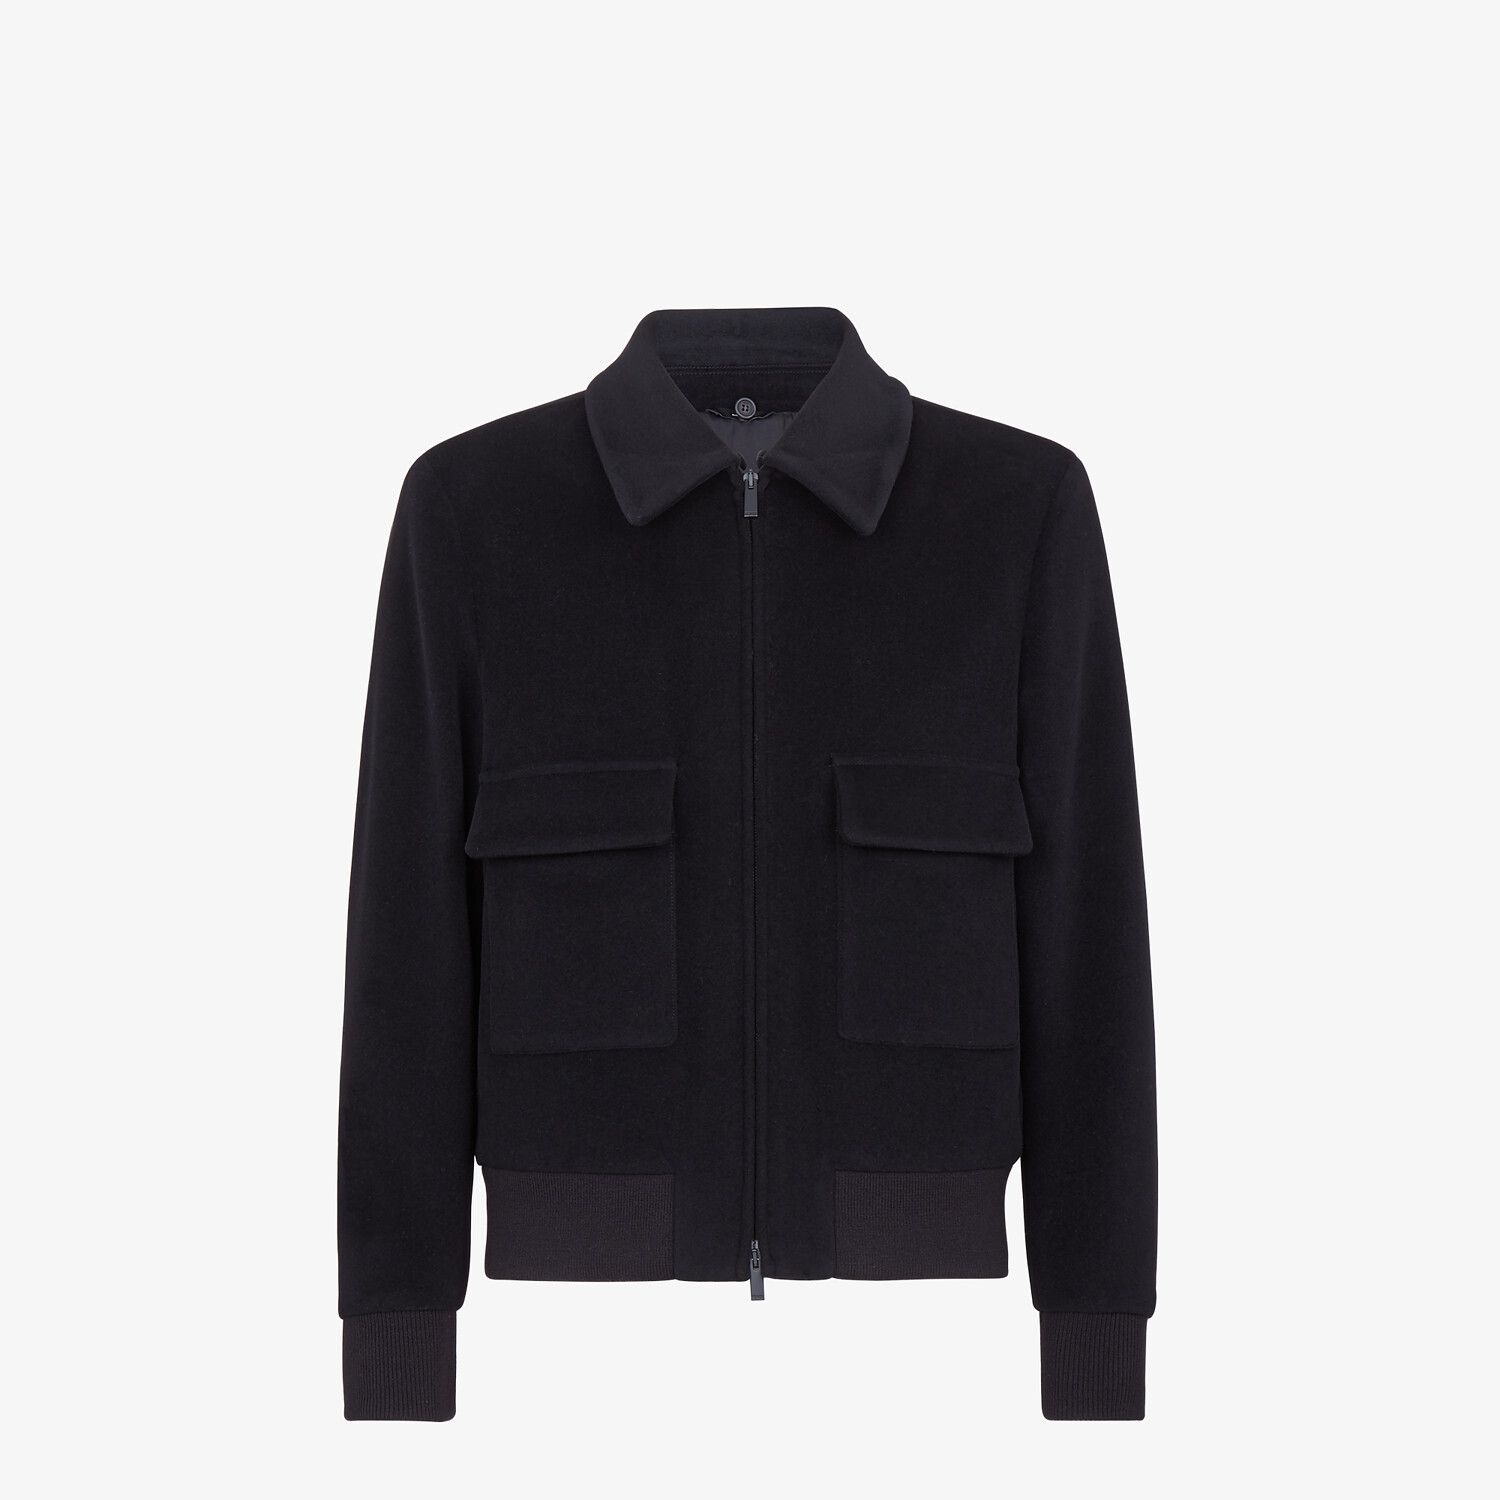 FENDI JACKET - Black wool jacket - view 4 detail